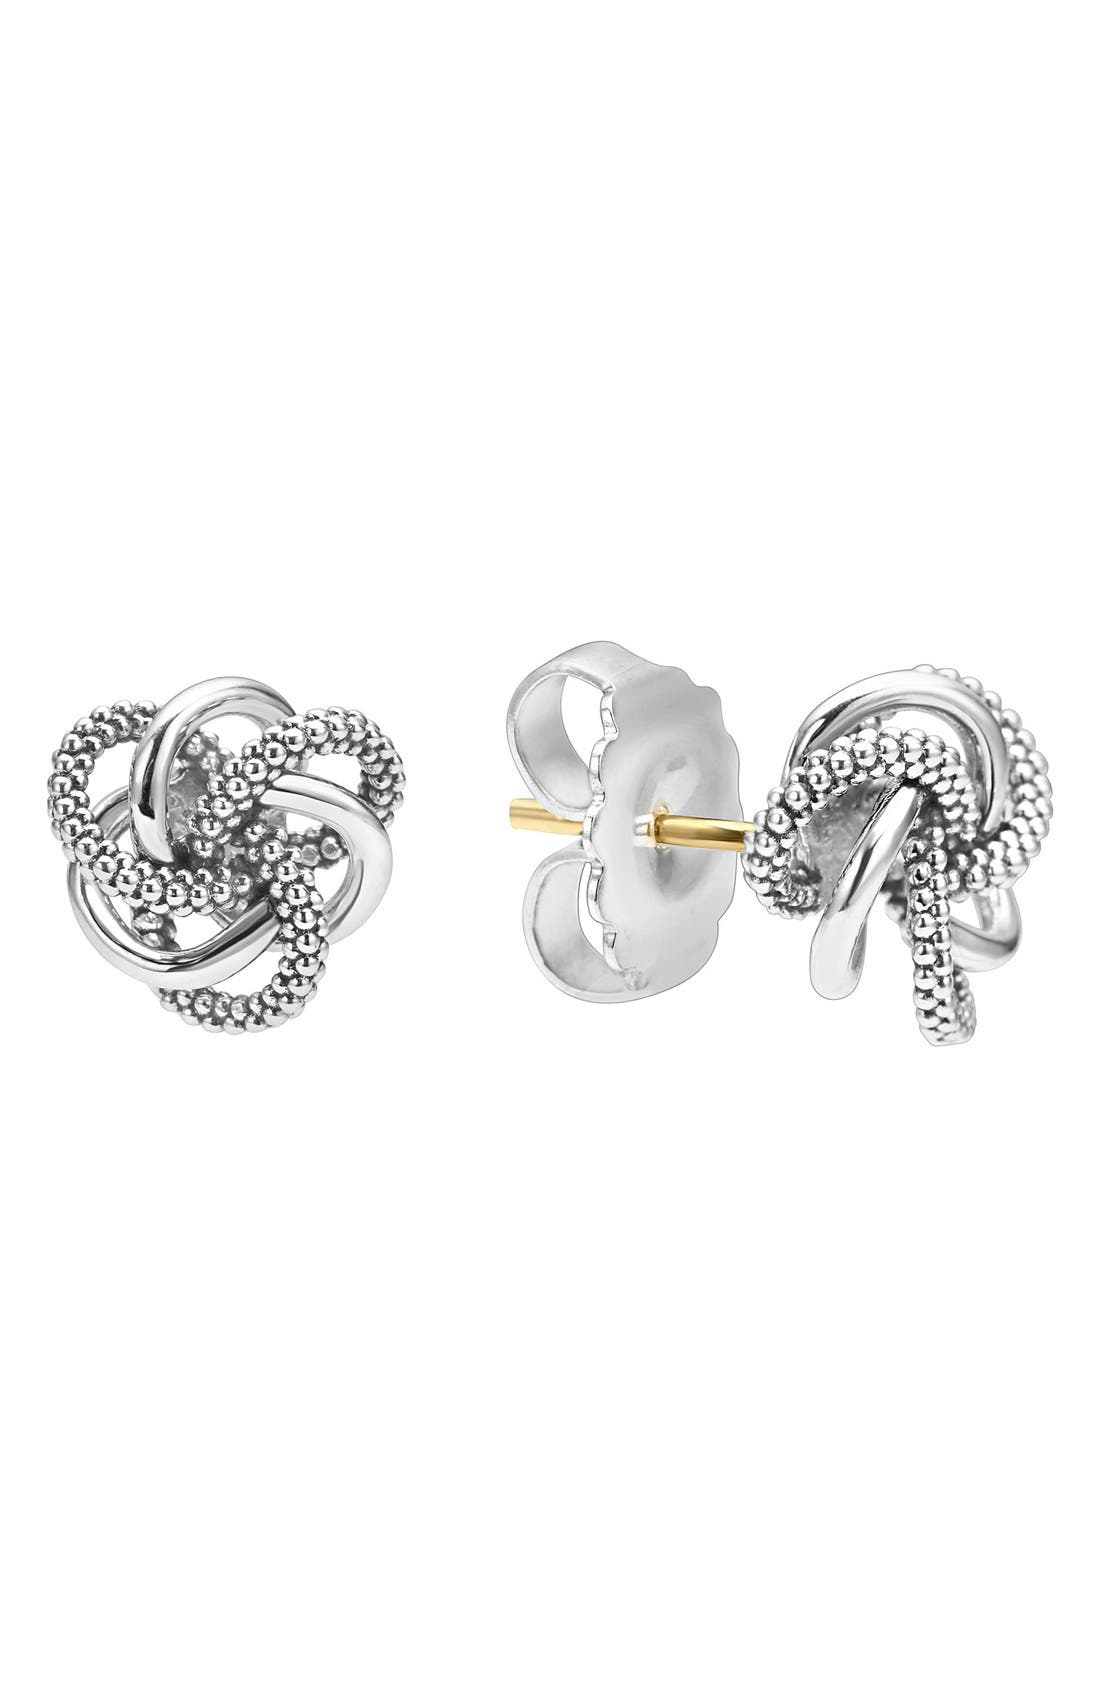 Alternate Image 1 Selected - LAGOS 'Love Knot' Sterling Silver Stud Earrings